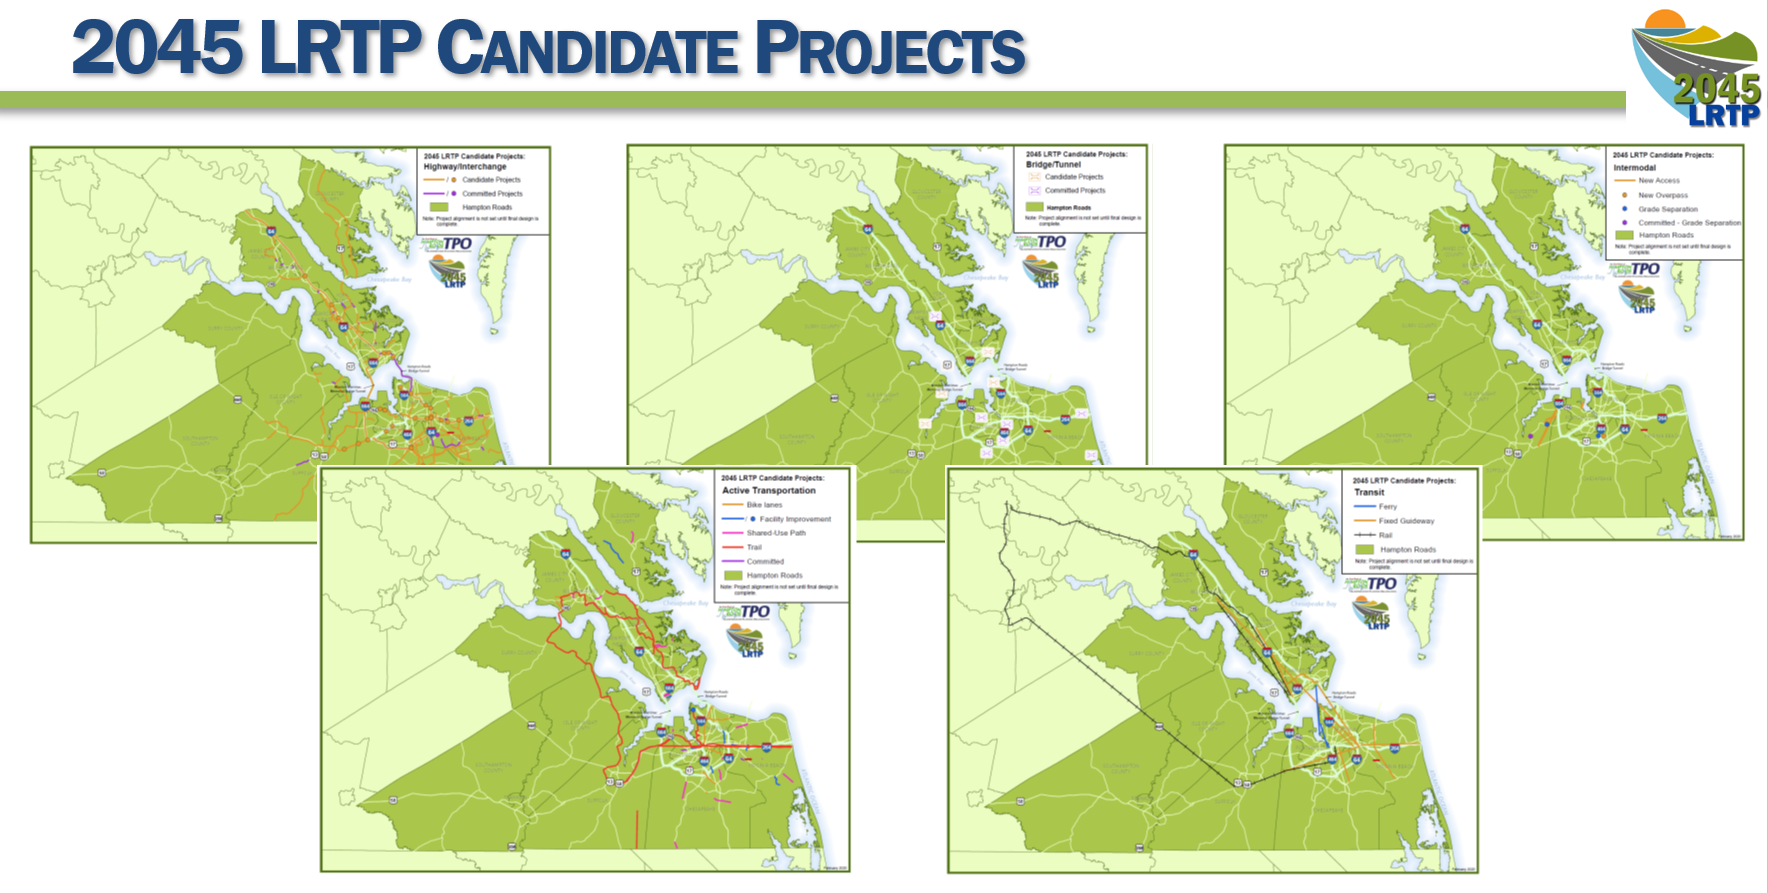 Collection of maps with examples of Candidate projects for the 2045 LRTP